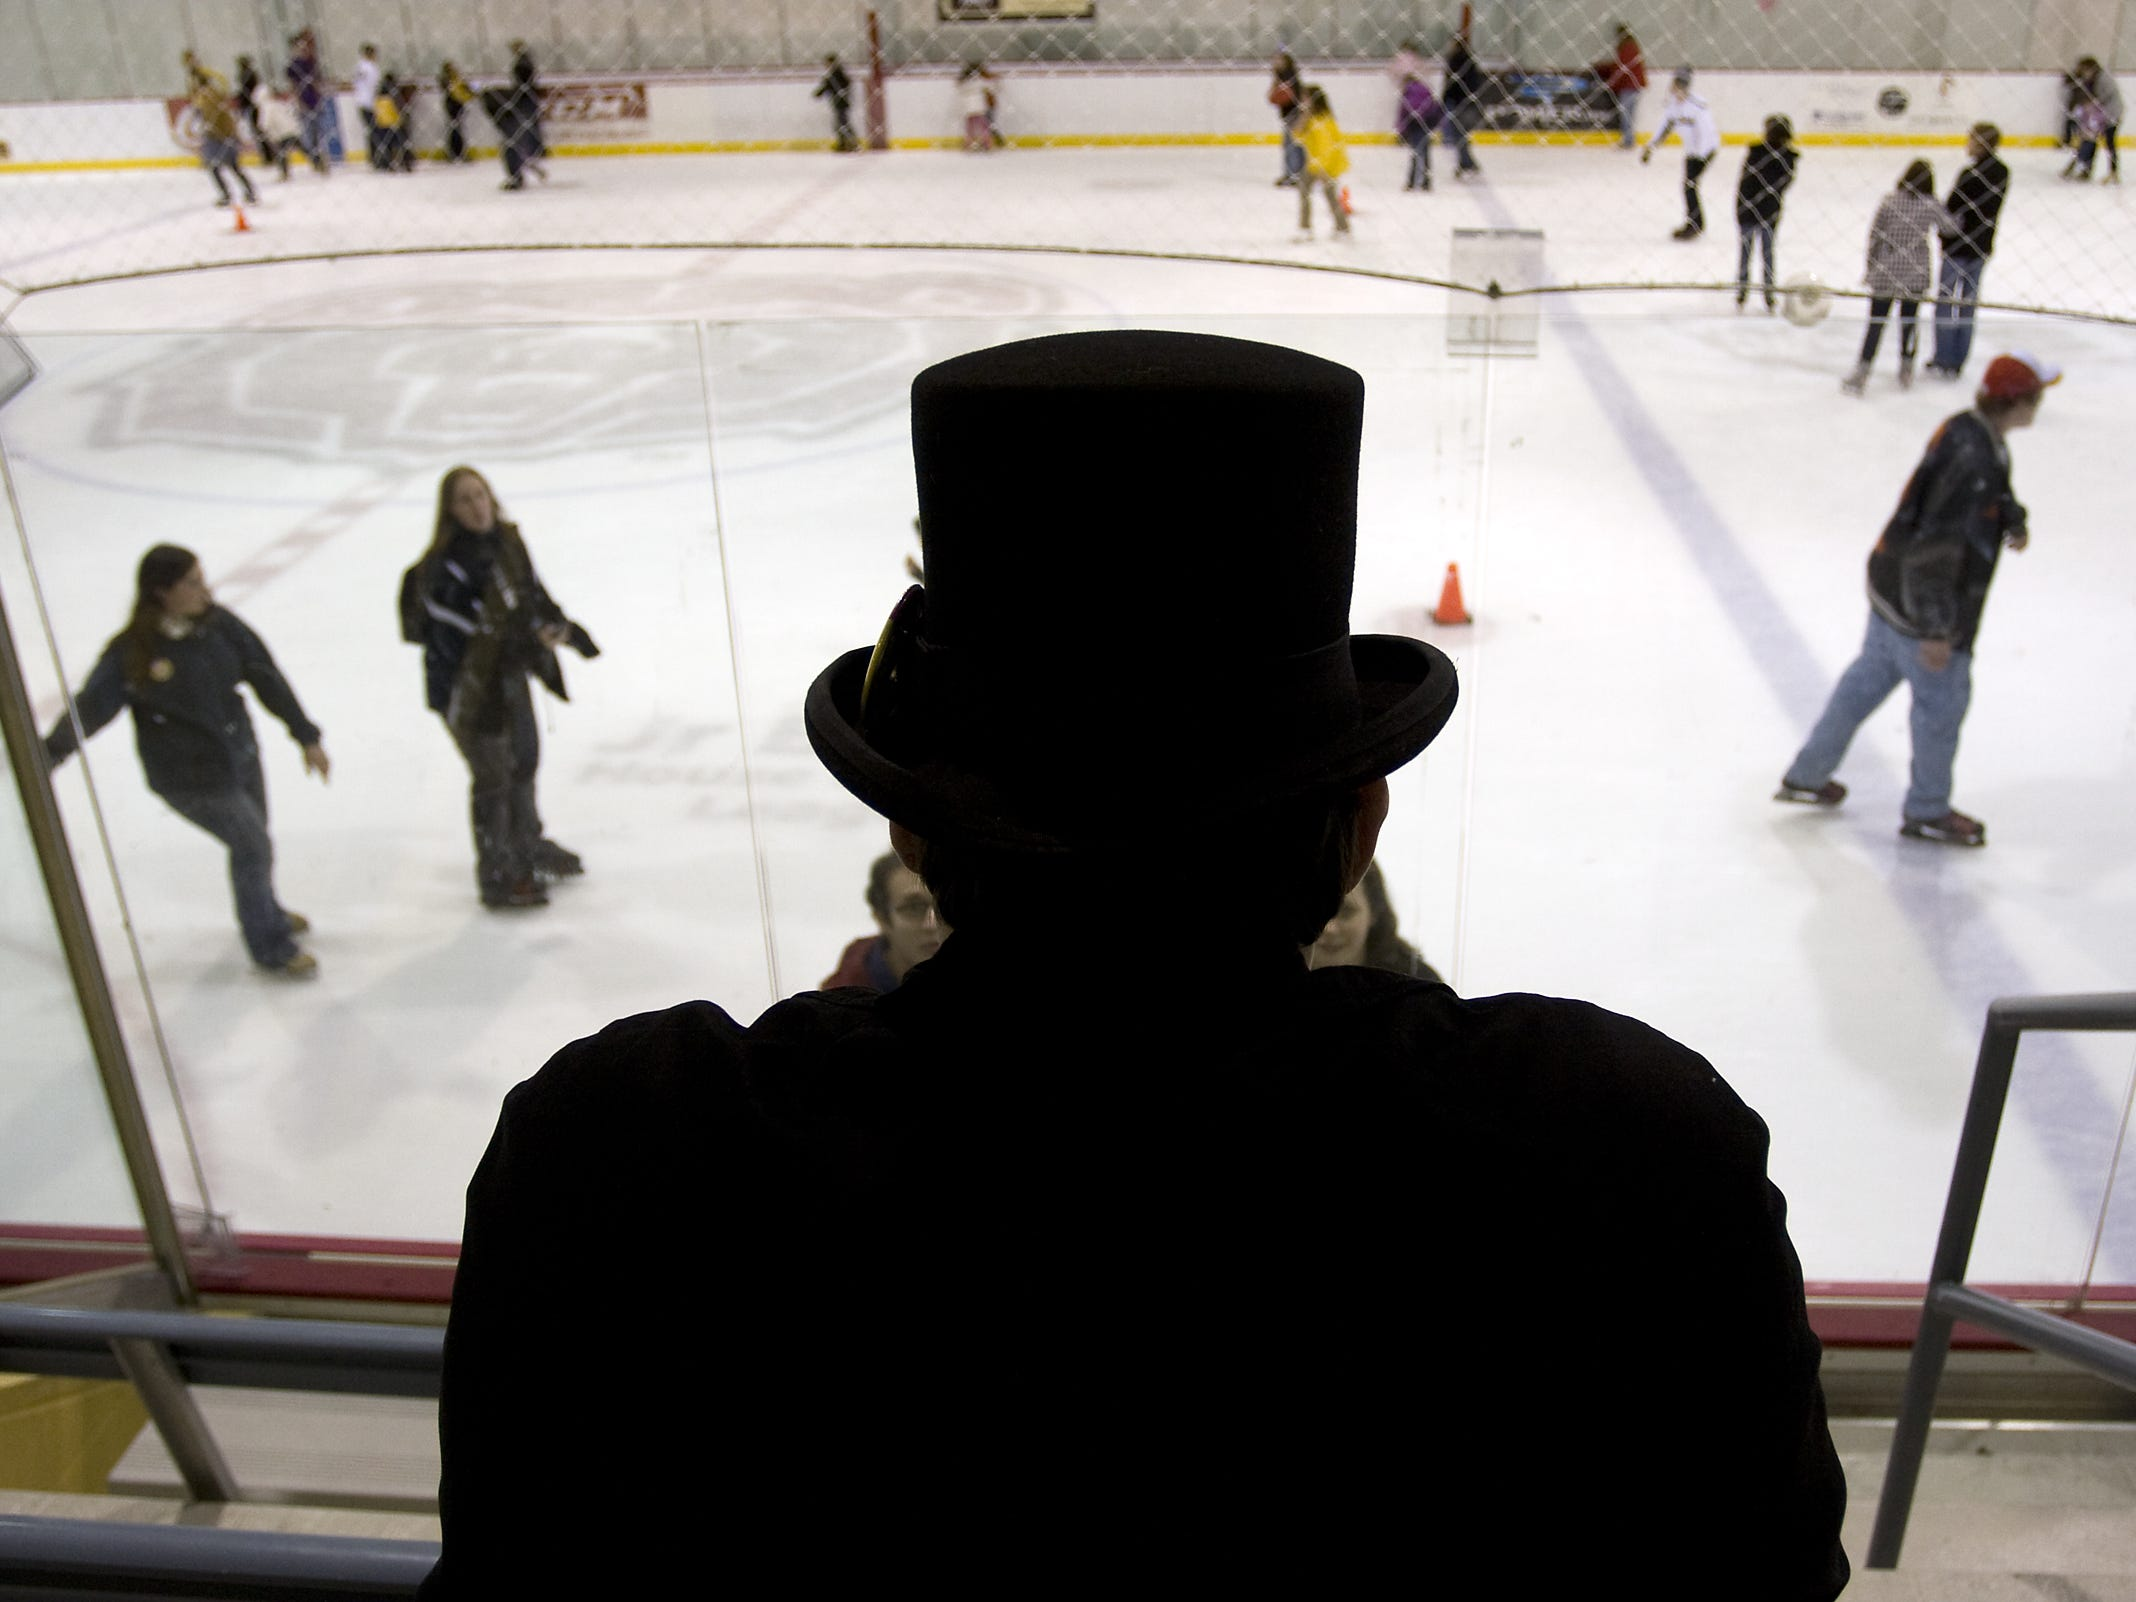 Robi Finley, center, watches as his friends and other New Year's Eve celebrants participate in an Open Ice Skate at Mediacom Ice Park during First Night Springfield 2009 on Dec. 31, 2009.